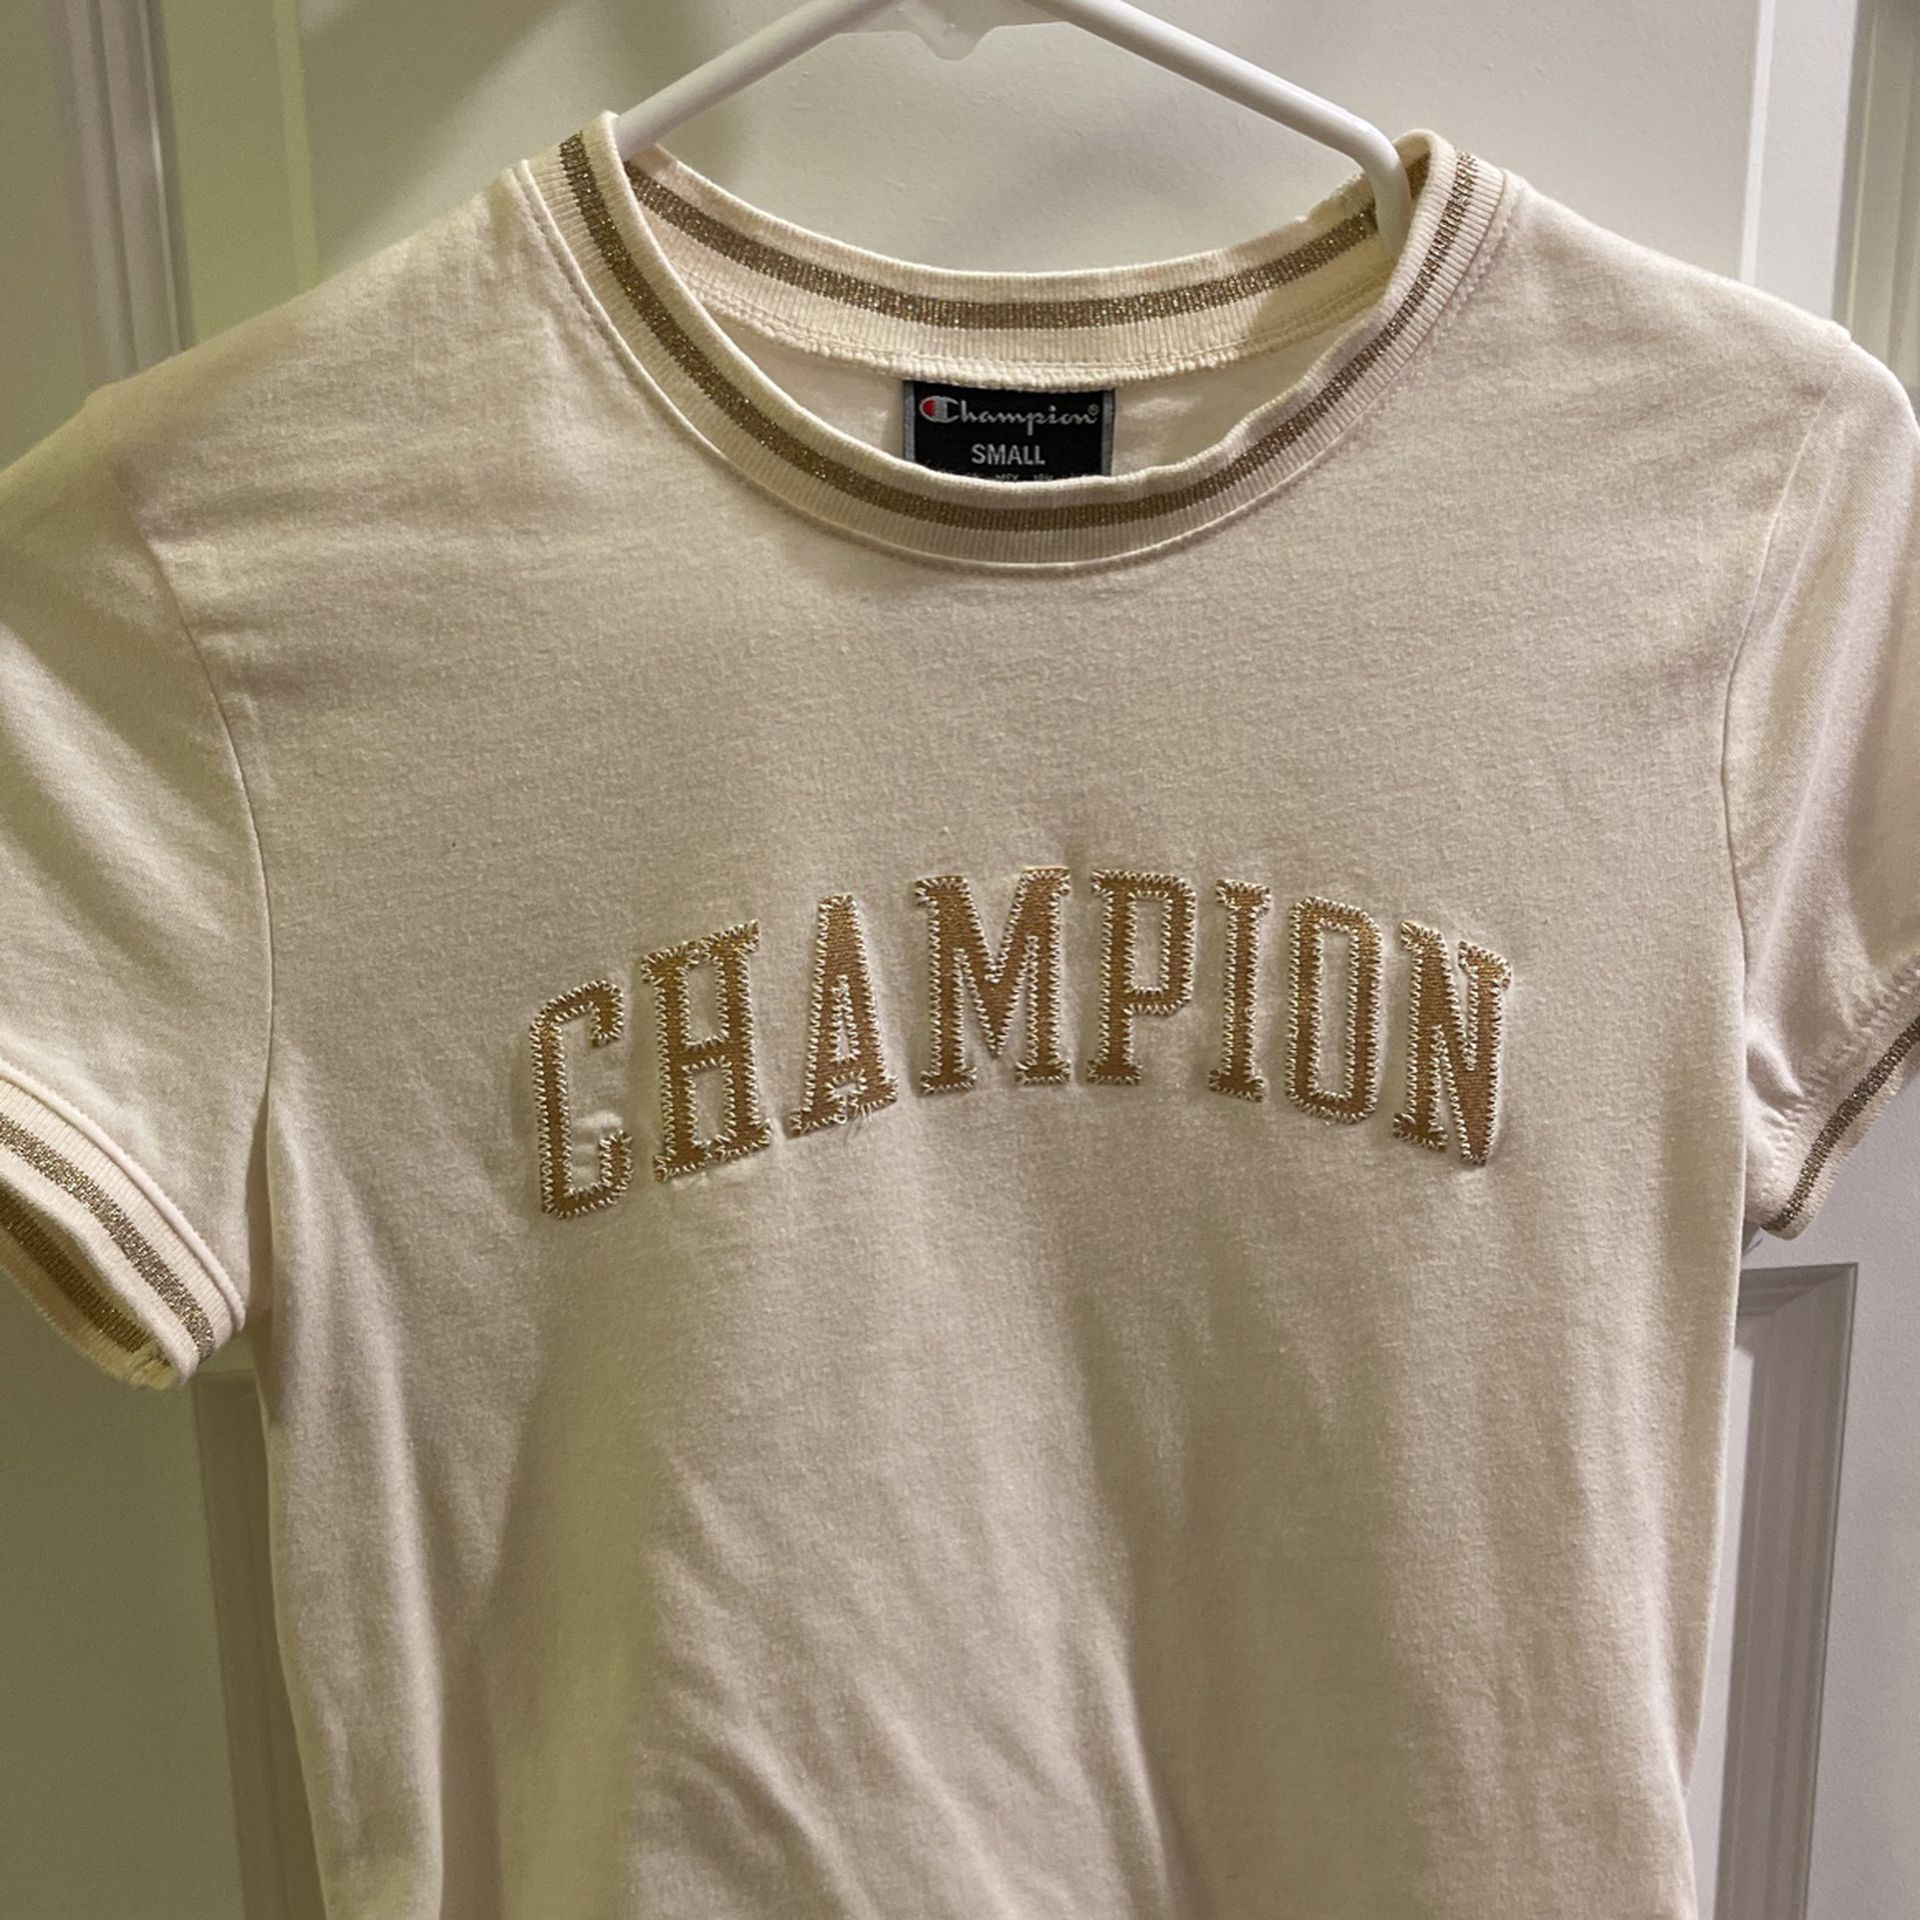 Champion fitted shirt